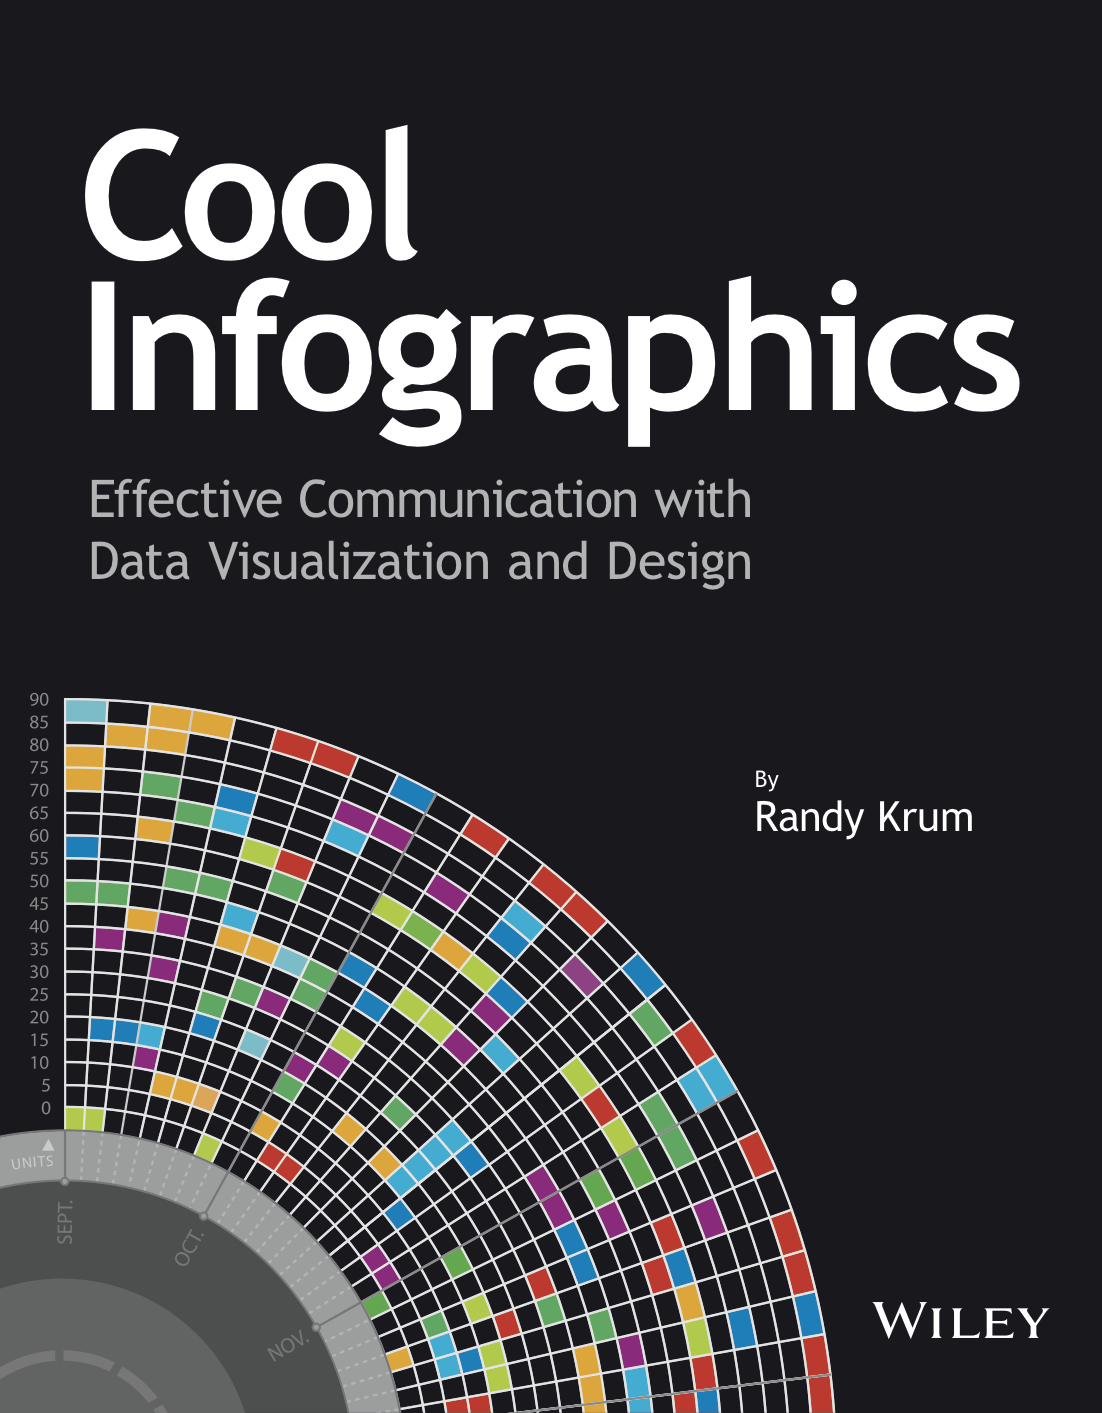 Cool Infographics book now available in print and ebook